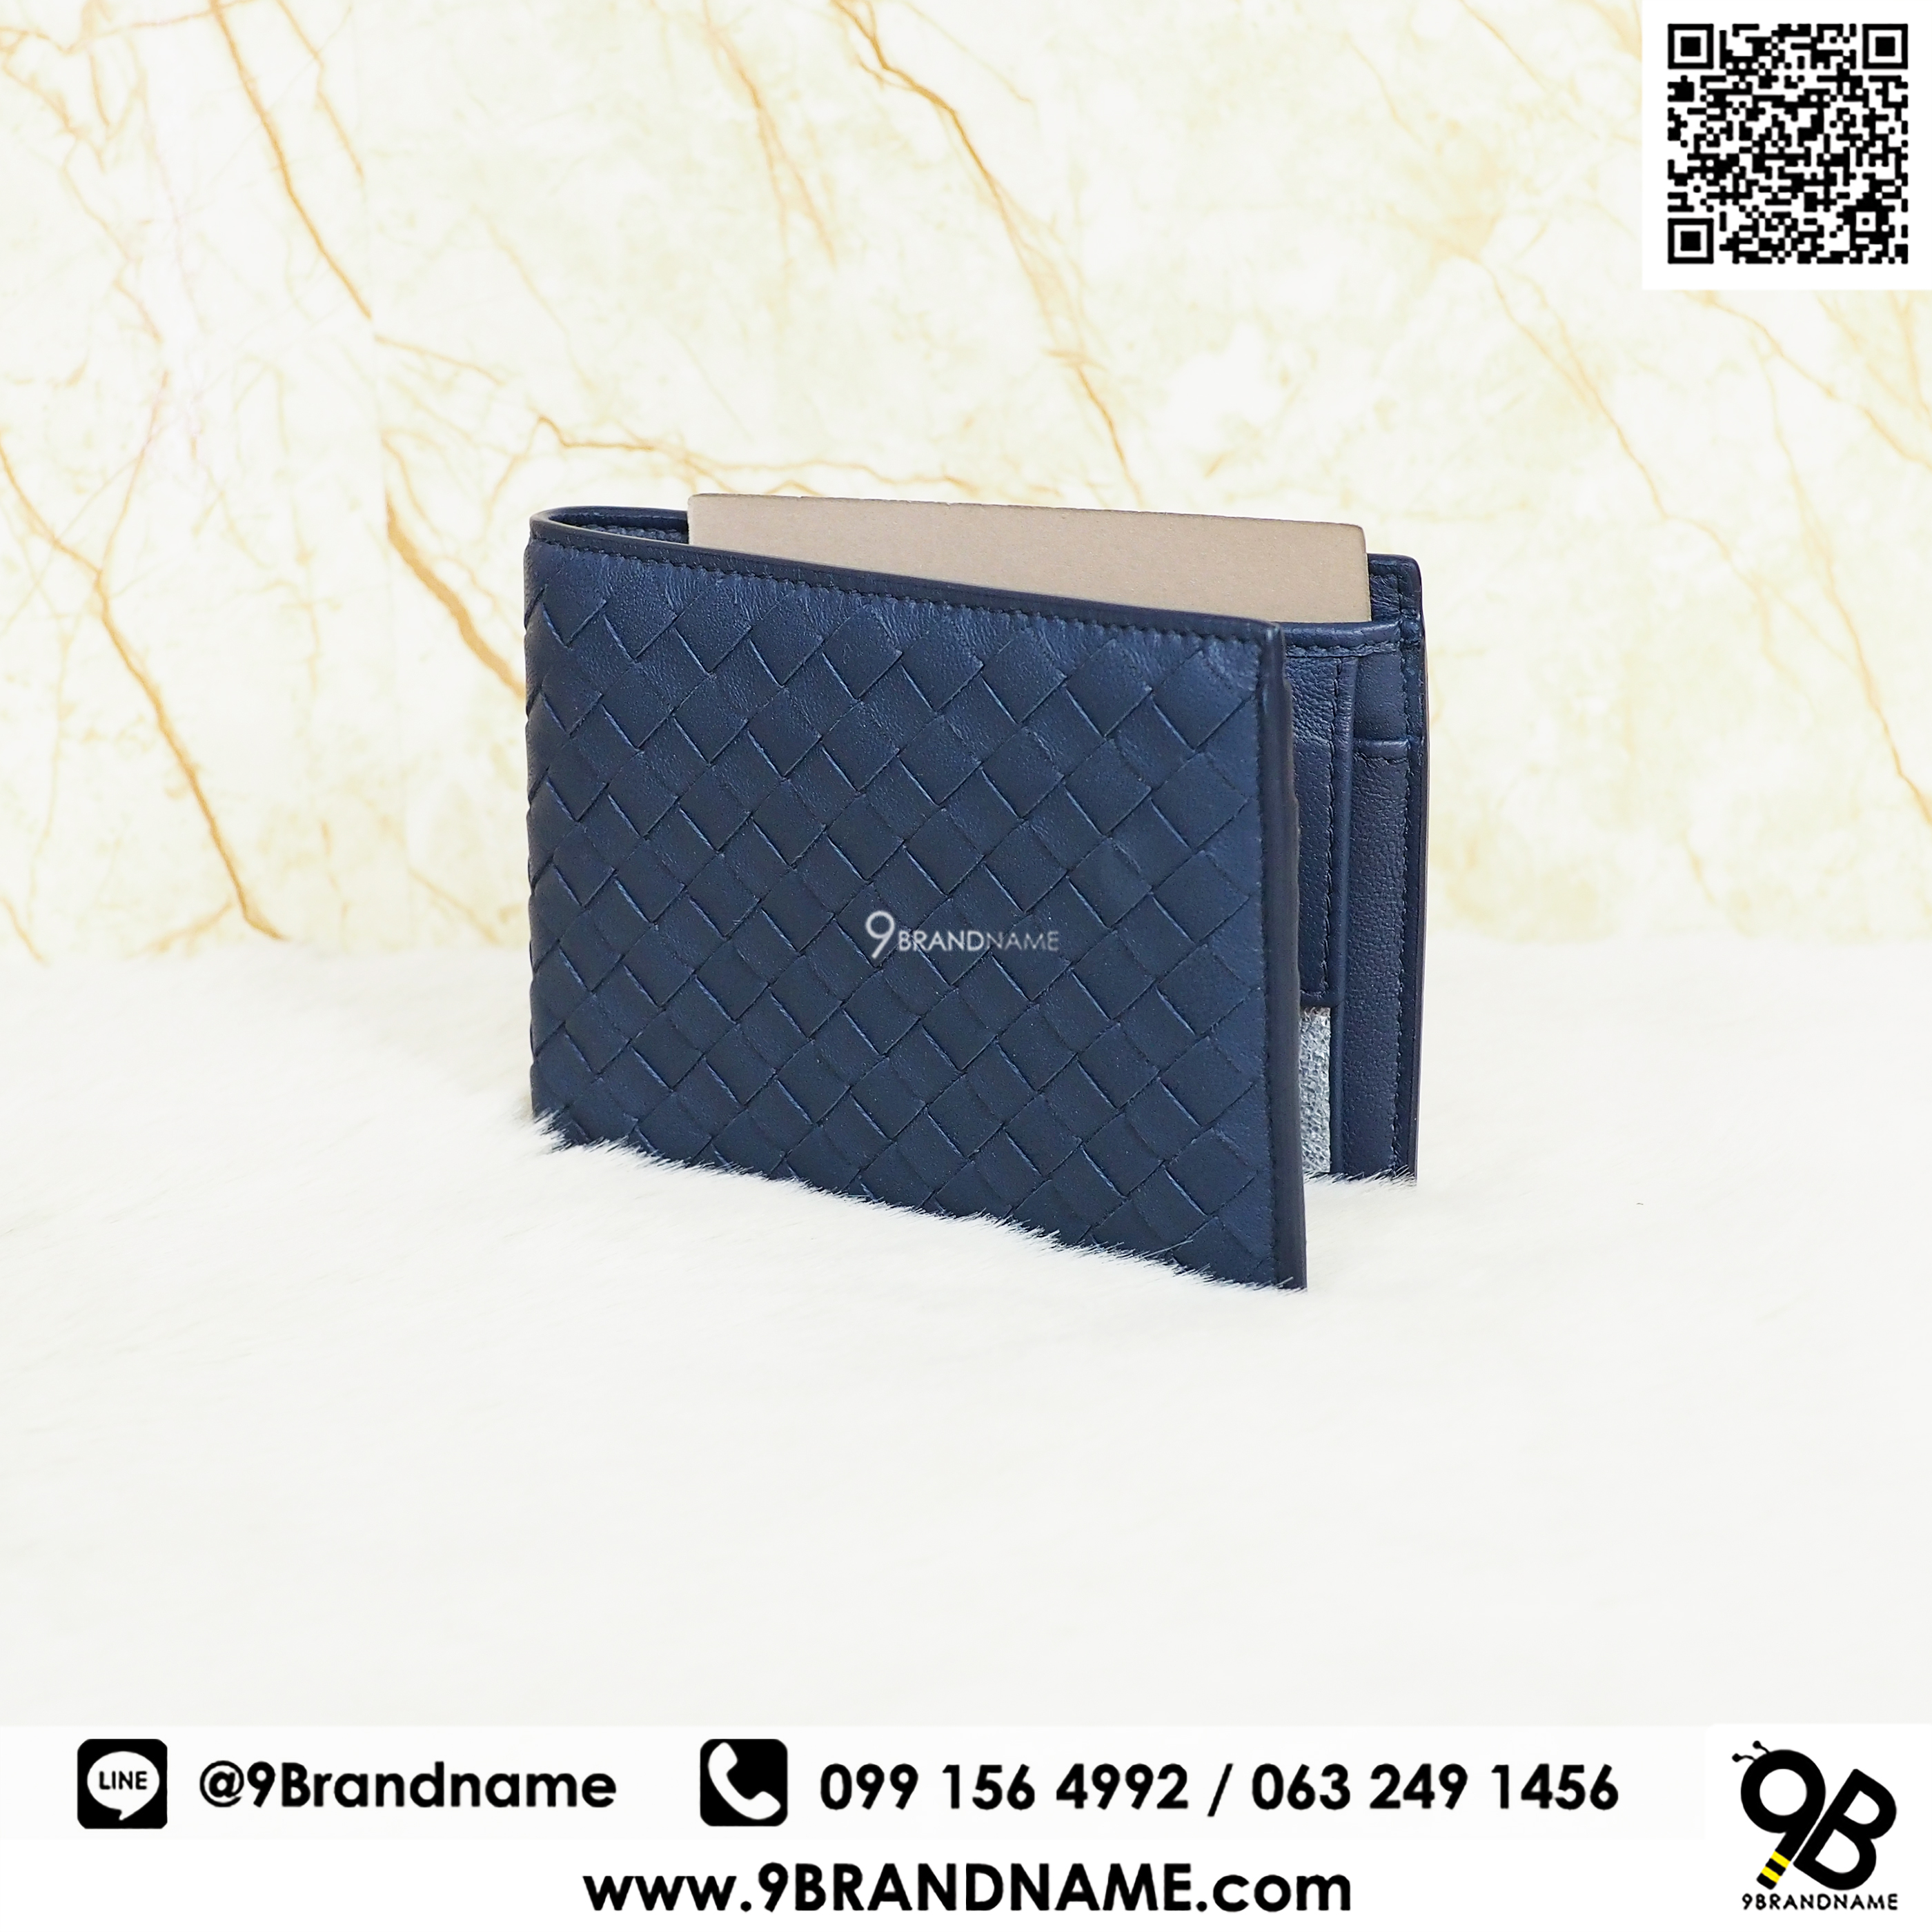 New Bottega Veneta Wallet Bi-Fold Whit Cions Purse Lamb Skin Blue Color